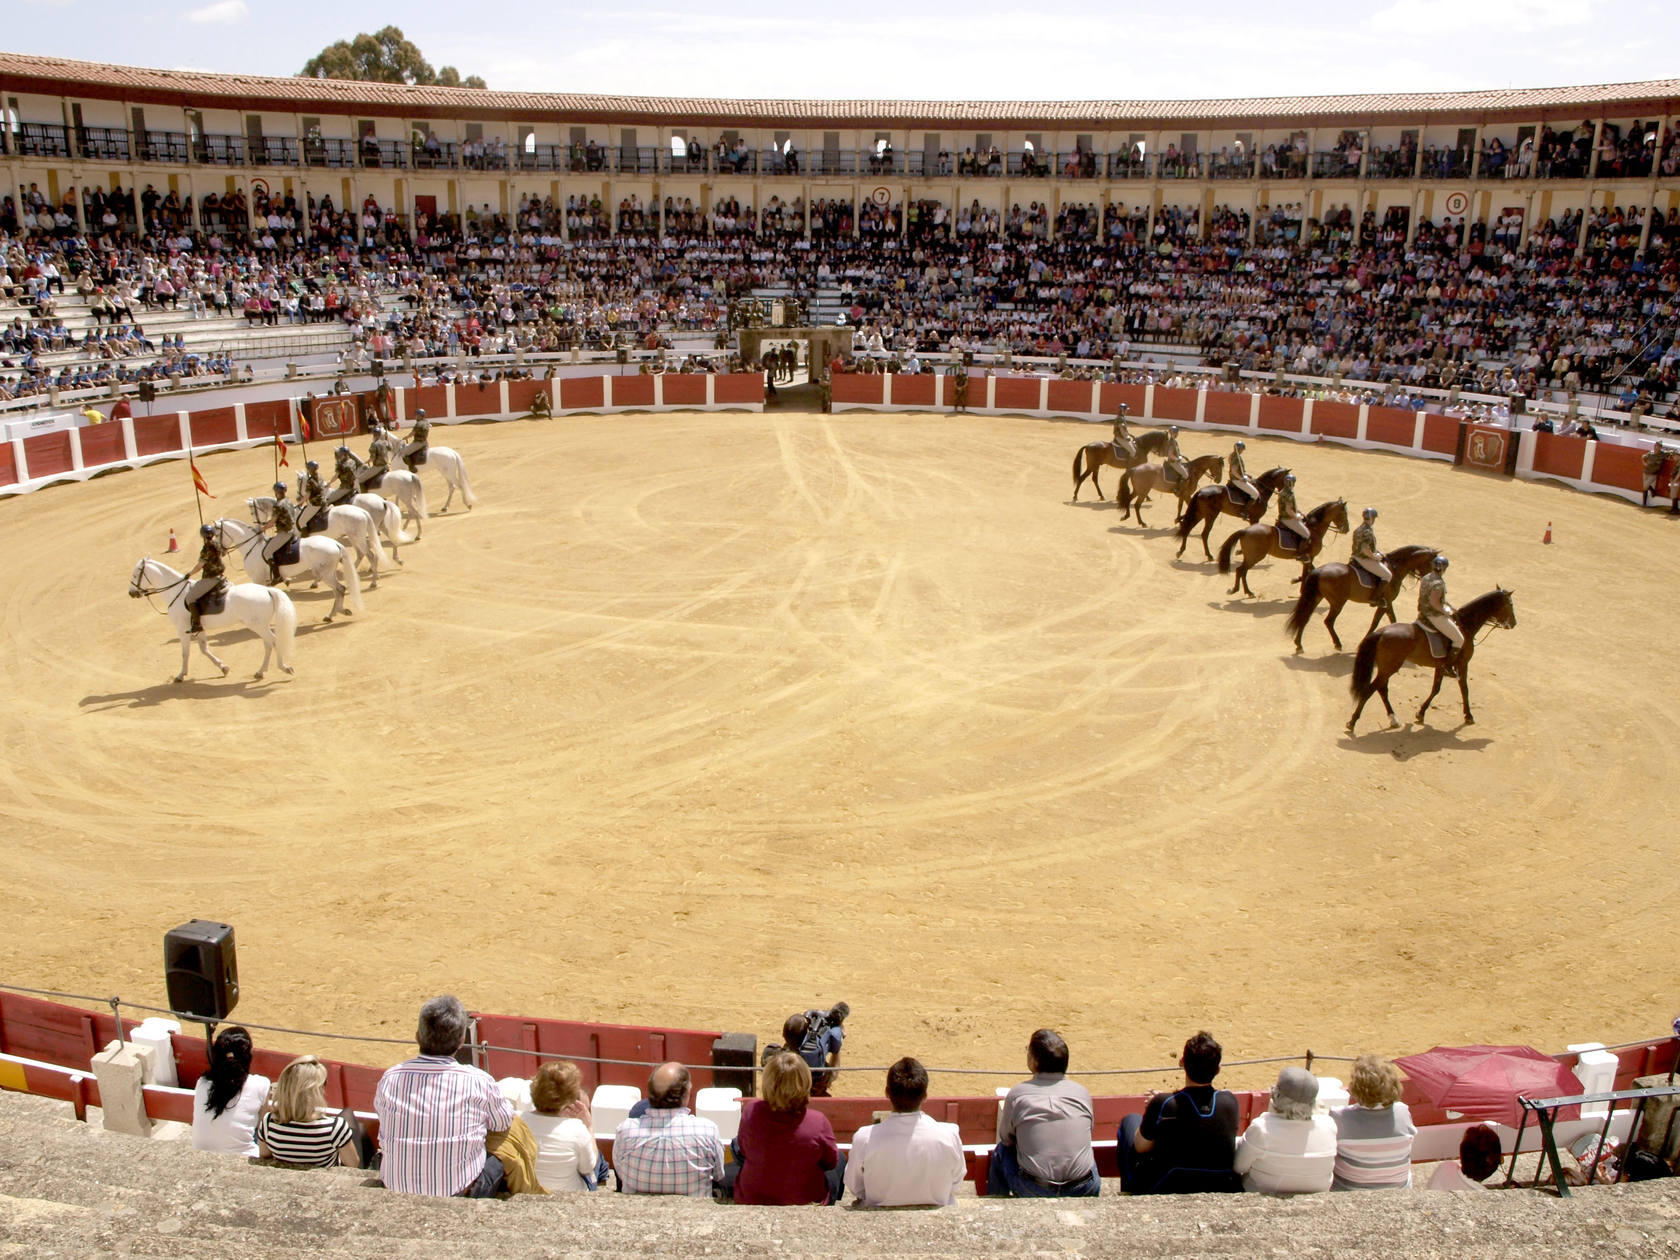 Exhibici&oacute;n de la Guardia Real en la plaza de toros de C&aacute;ceres